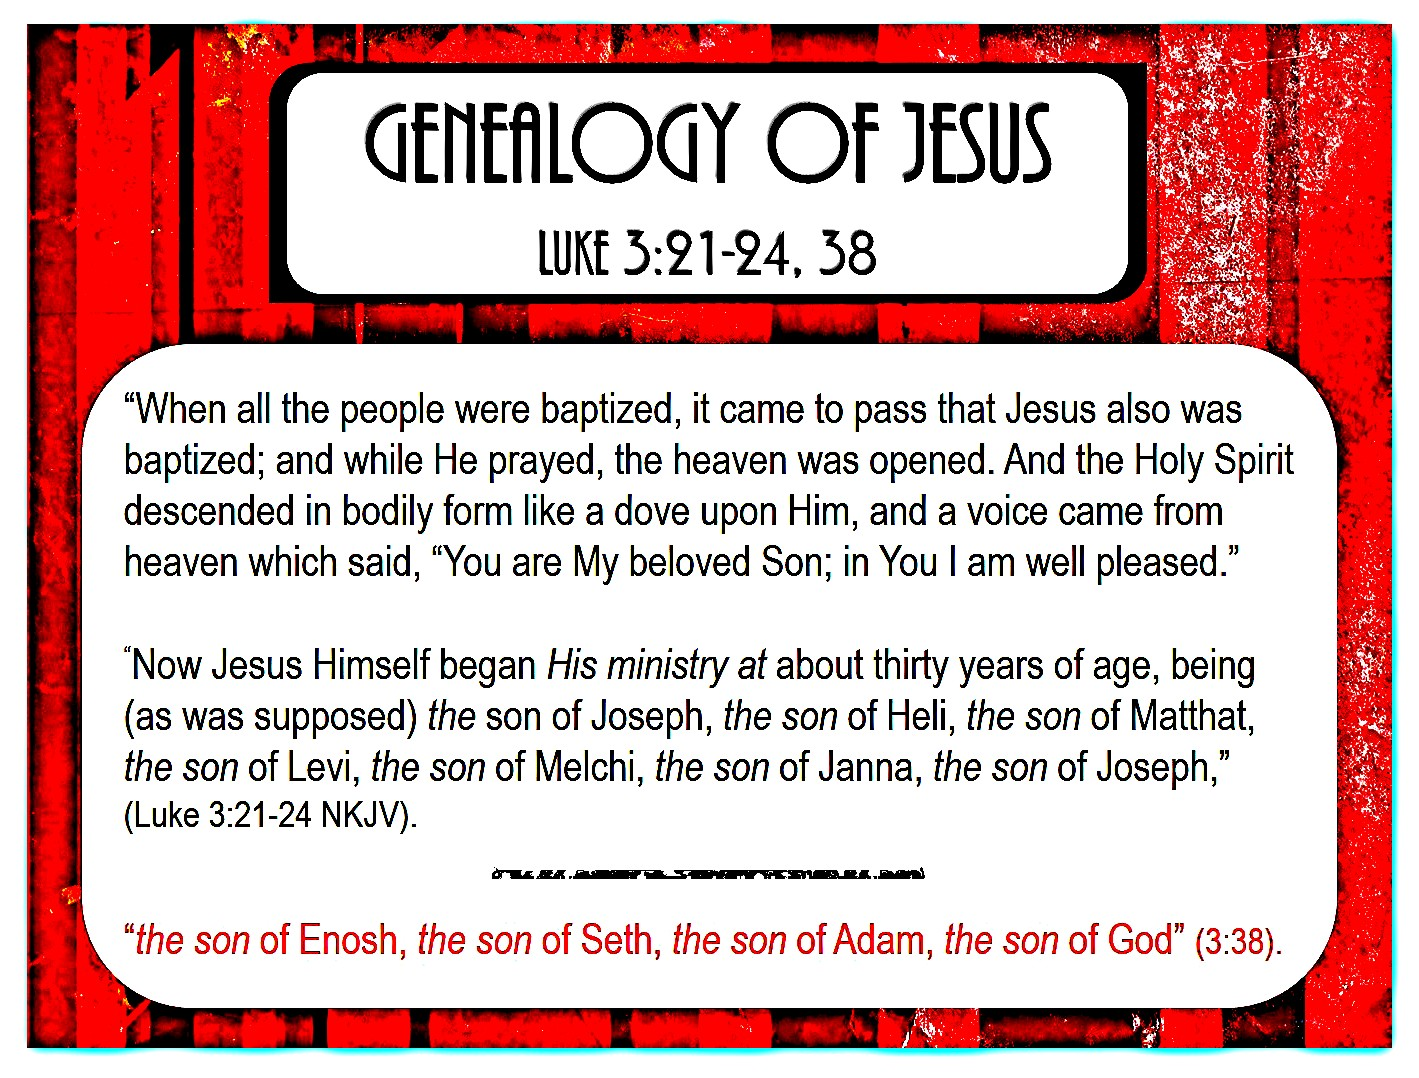 Genealogy of Jesus According to Luke